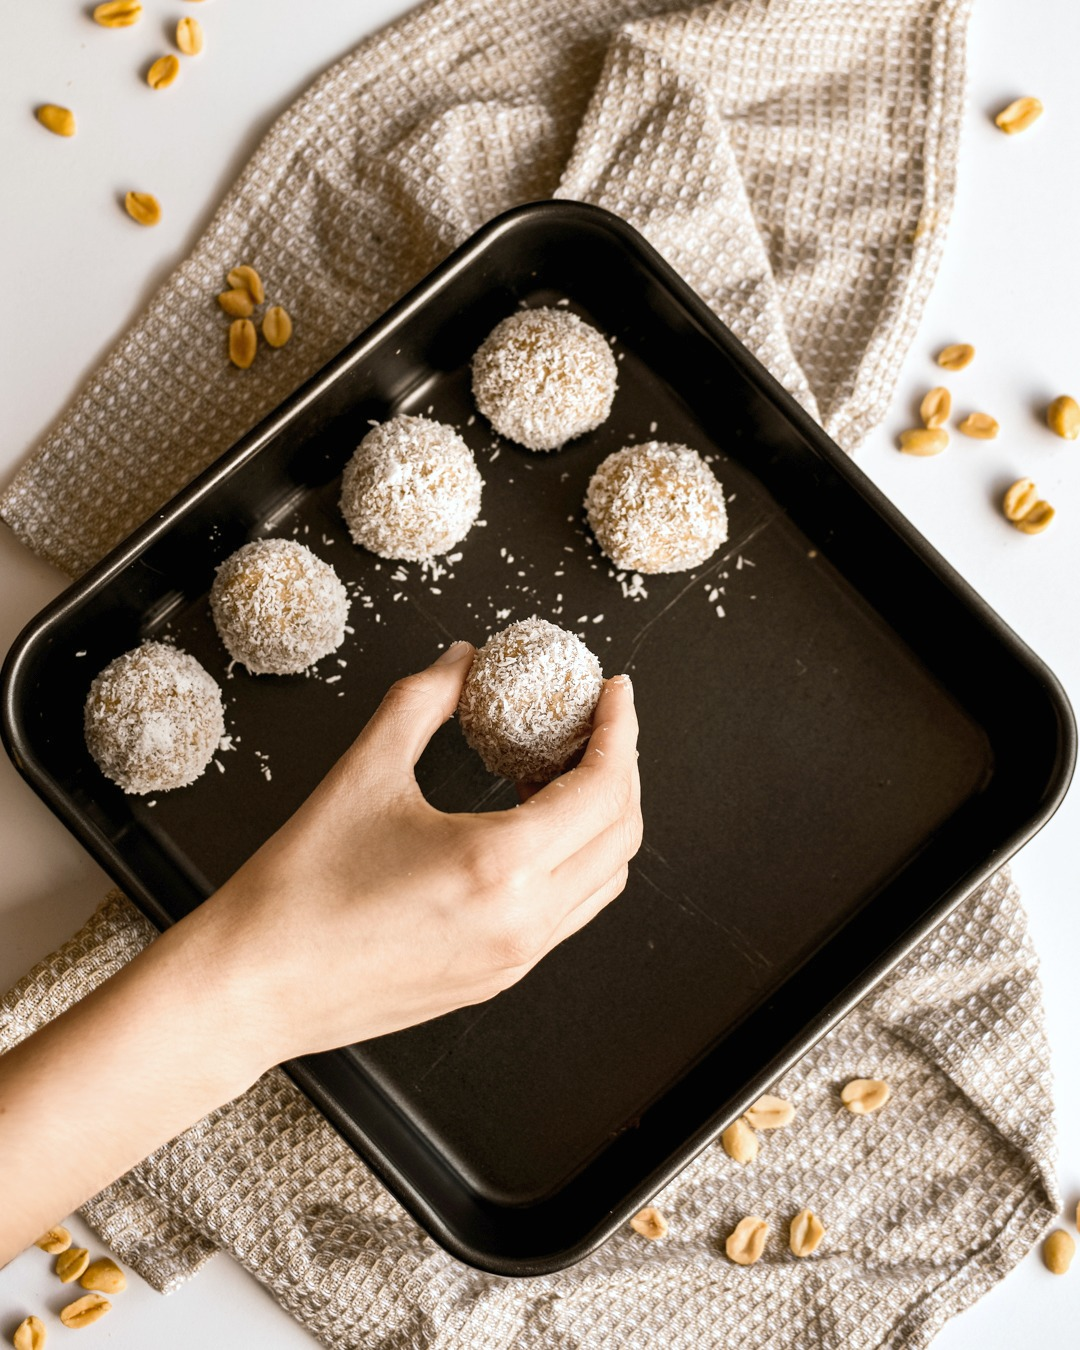 Hand is placing peanut protein balls onto baking sheet.